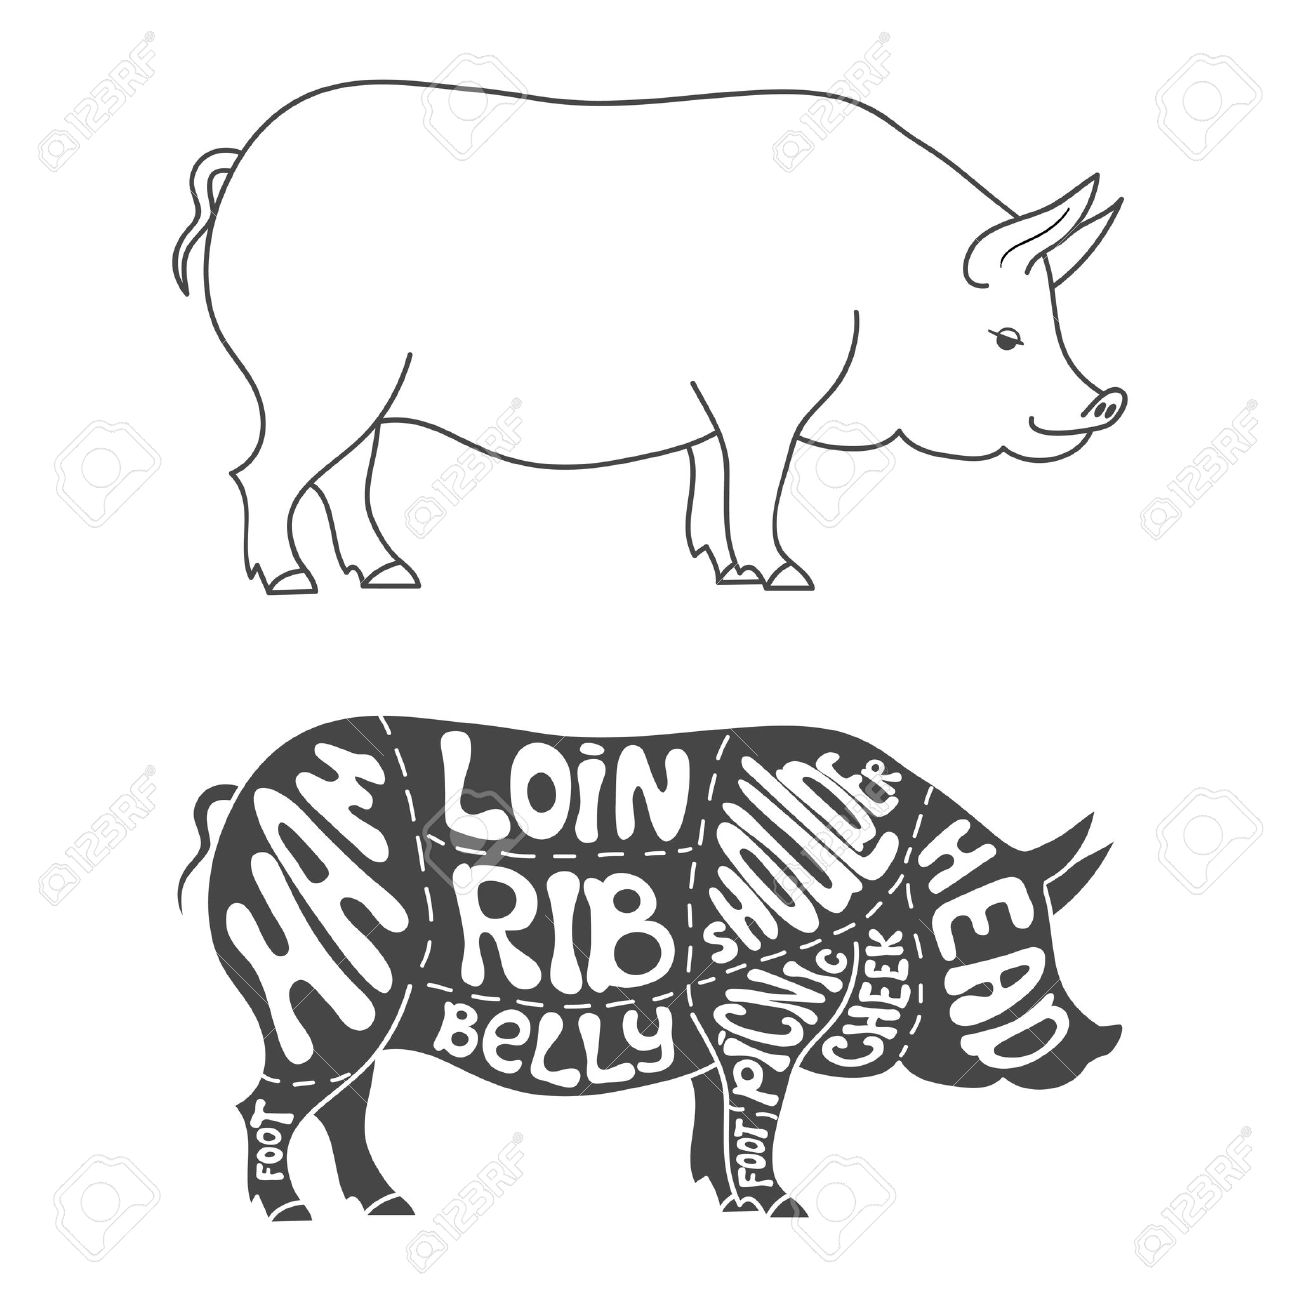 pig cuts diagram weg motor thermistor wiring butcher drawing at getdrawings com free for personal use 1300x1300 pork hand drawn scheme royalty